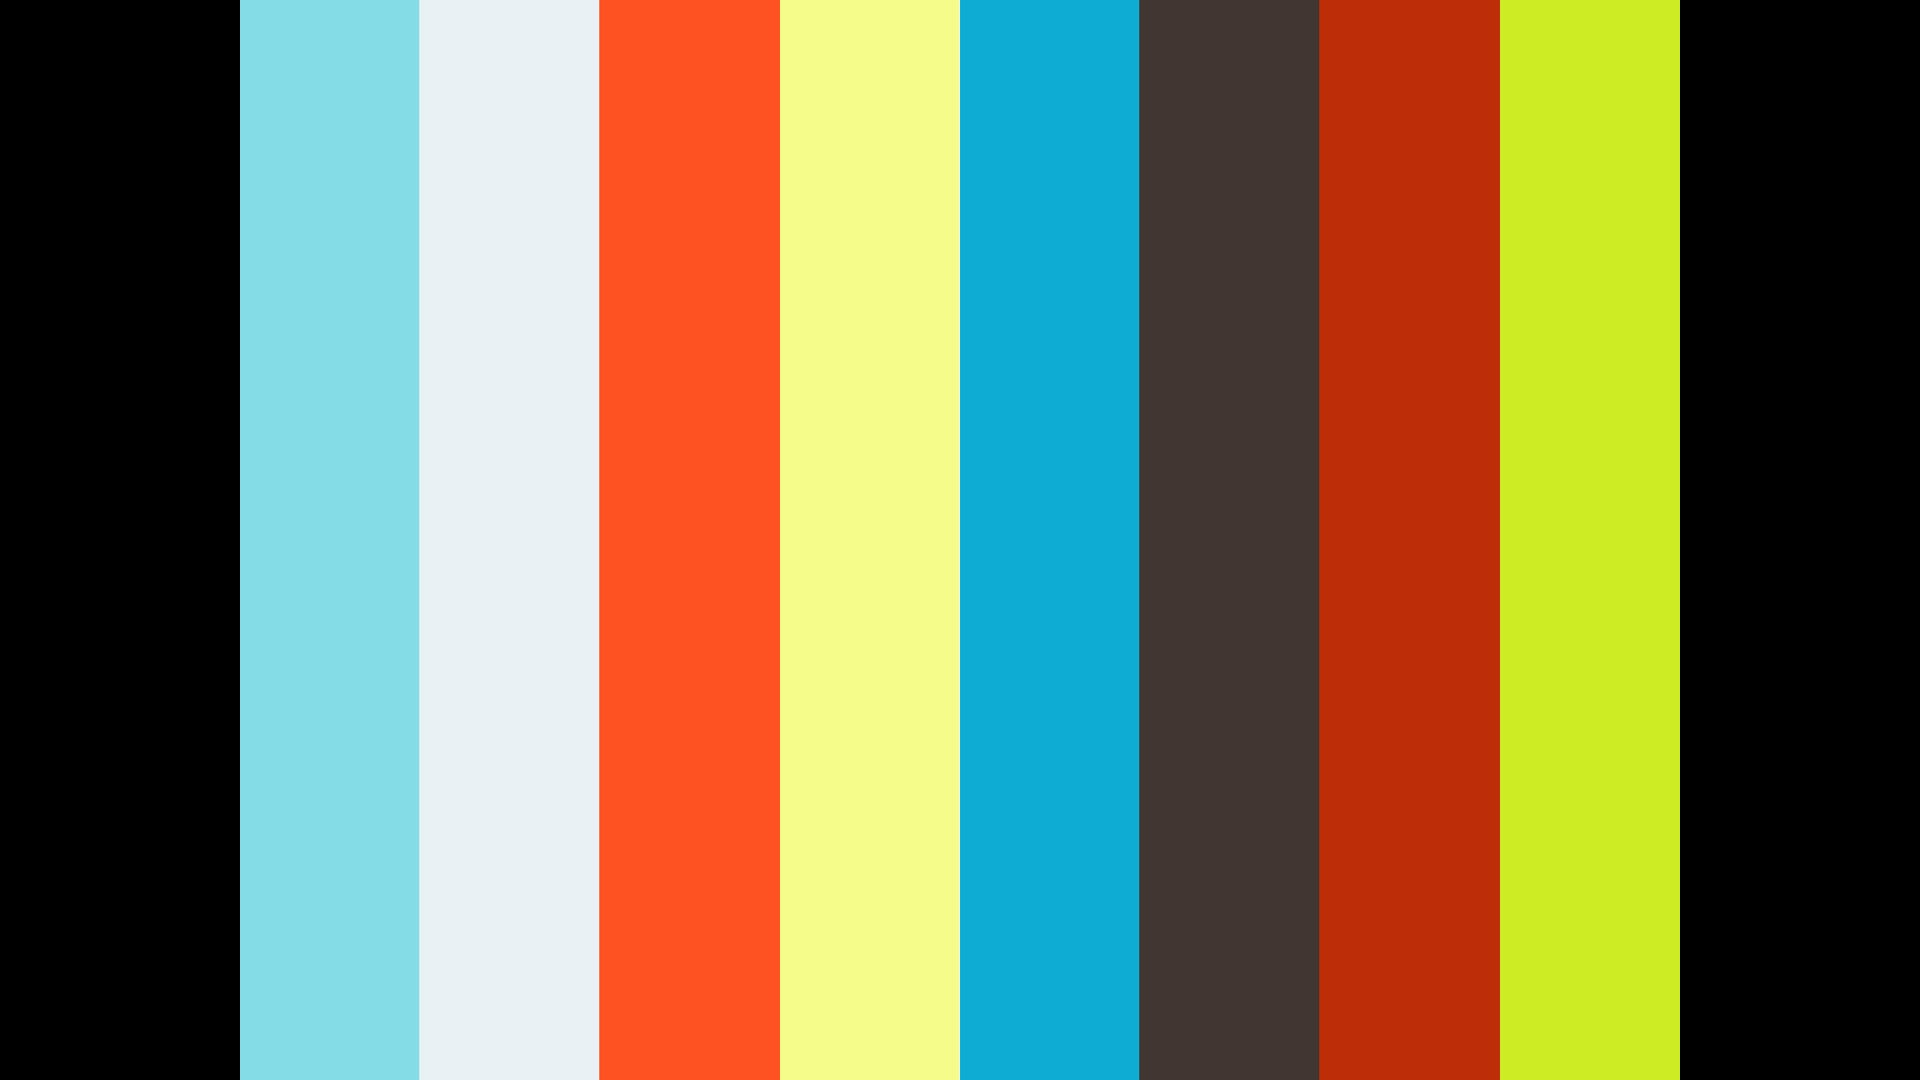 Lacplesis Summer beer TVC